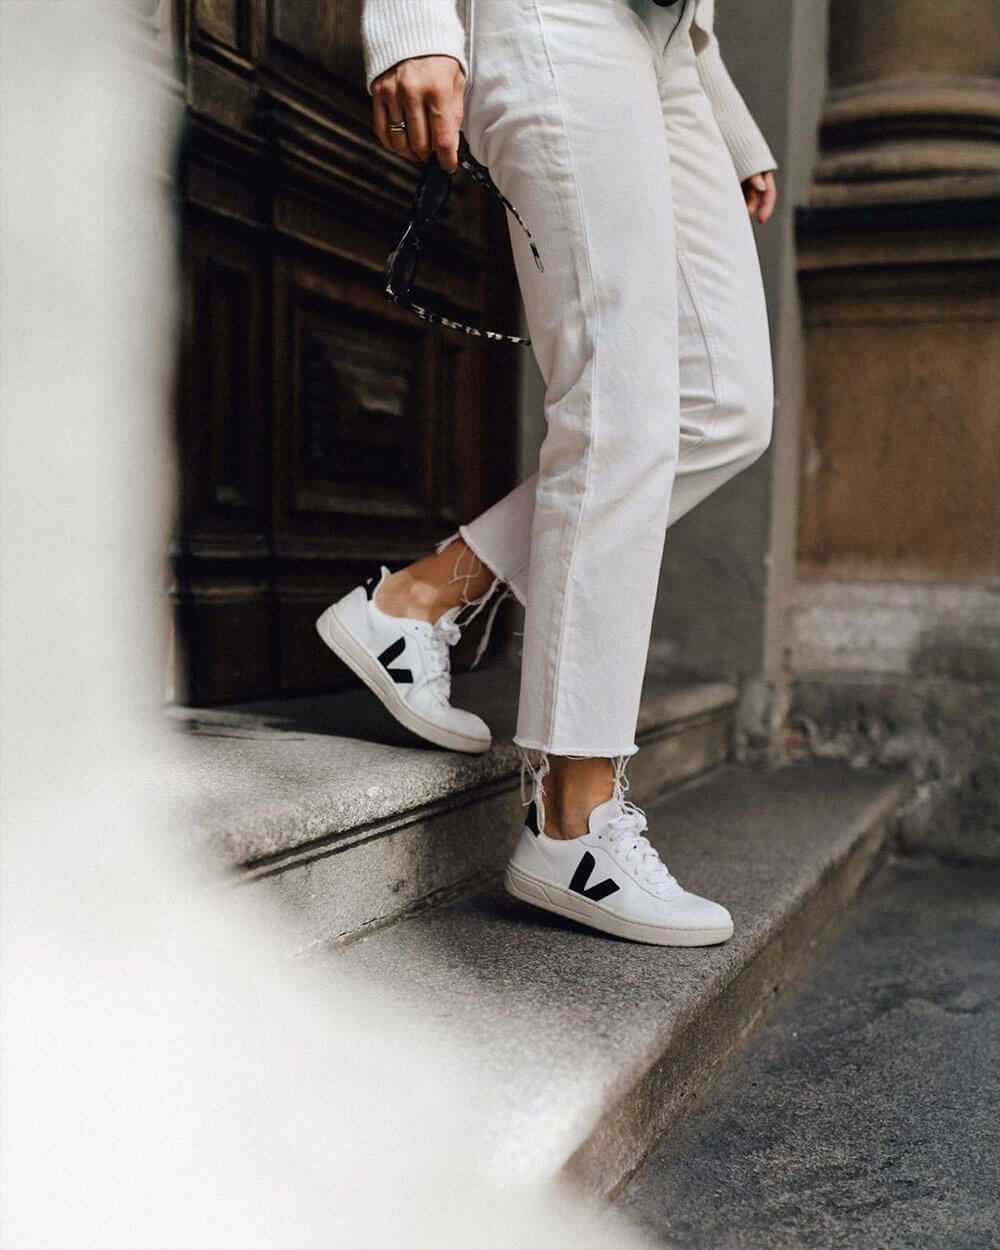 Veja ethical and sustainable sneakers